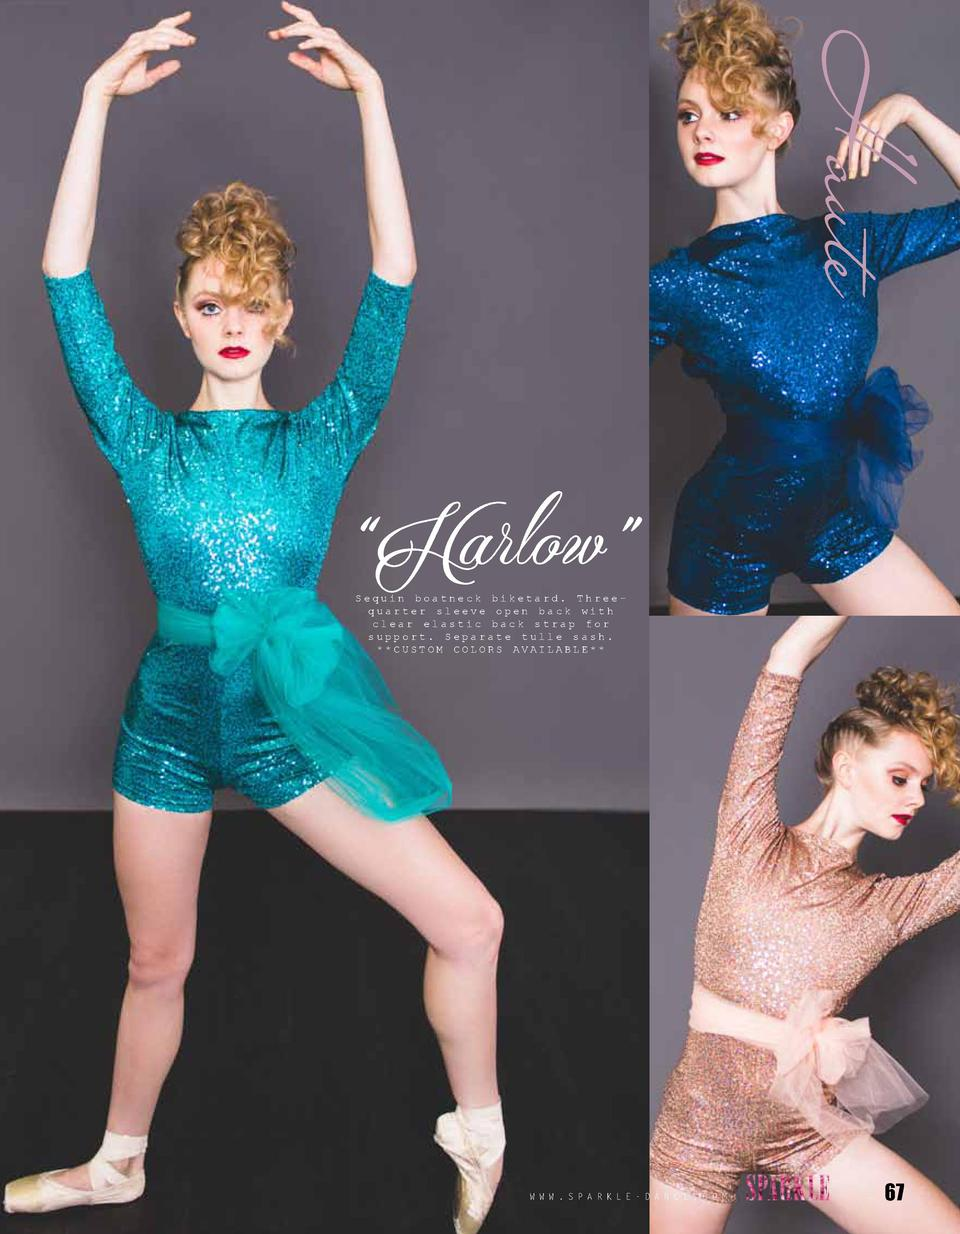 Haute    Harlow    Sequin boatneck biketard. Threequarter sleeve open back with clear elastic back strap for support. Sepa...